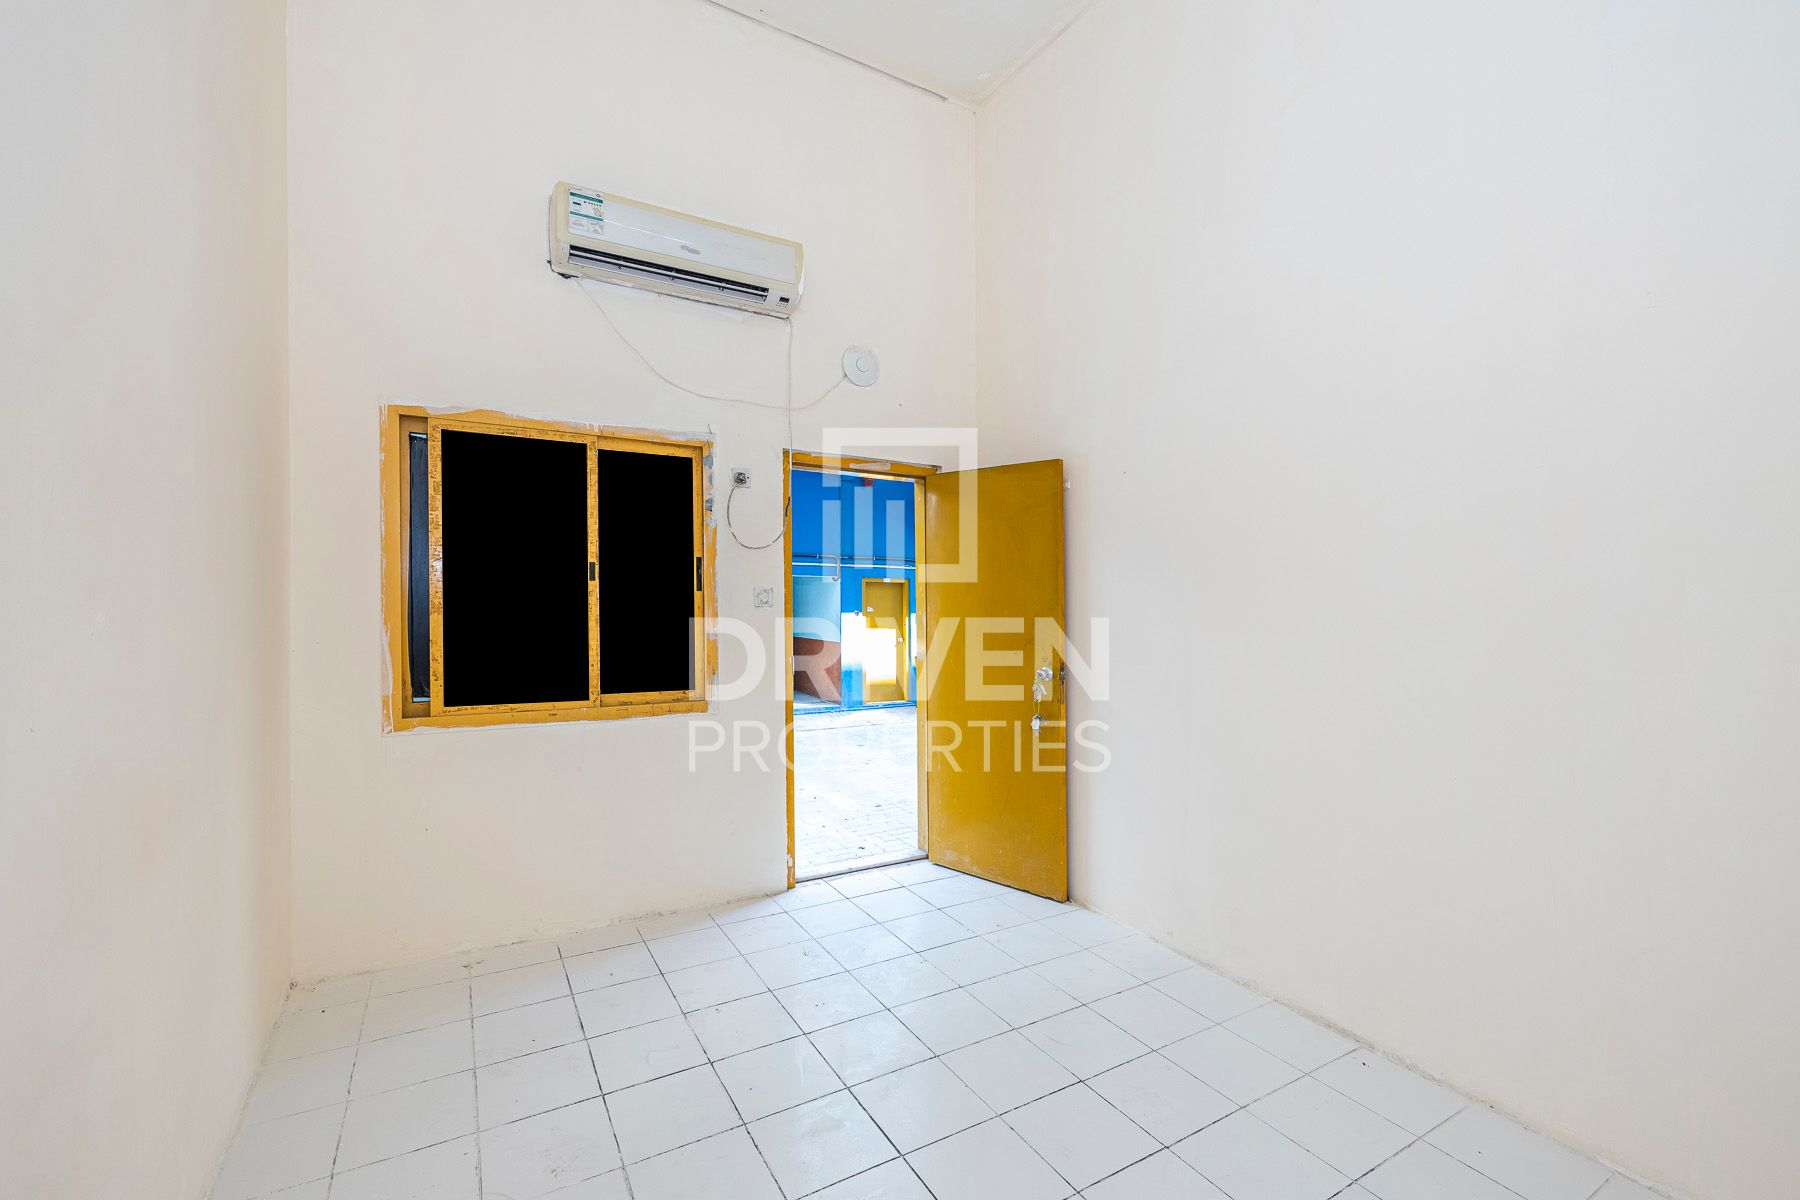 For Rent 140 Room Labour Camp in Al Qouz